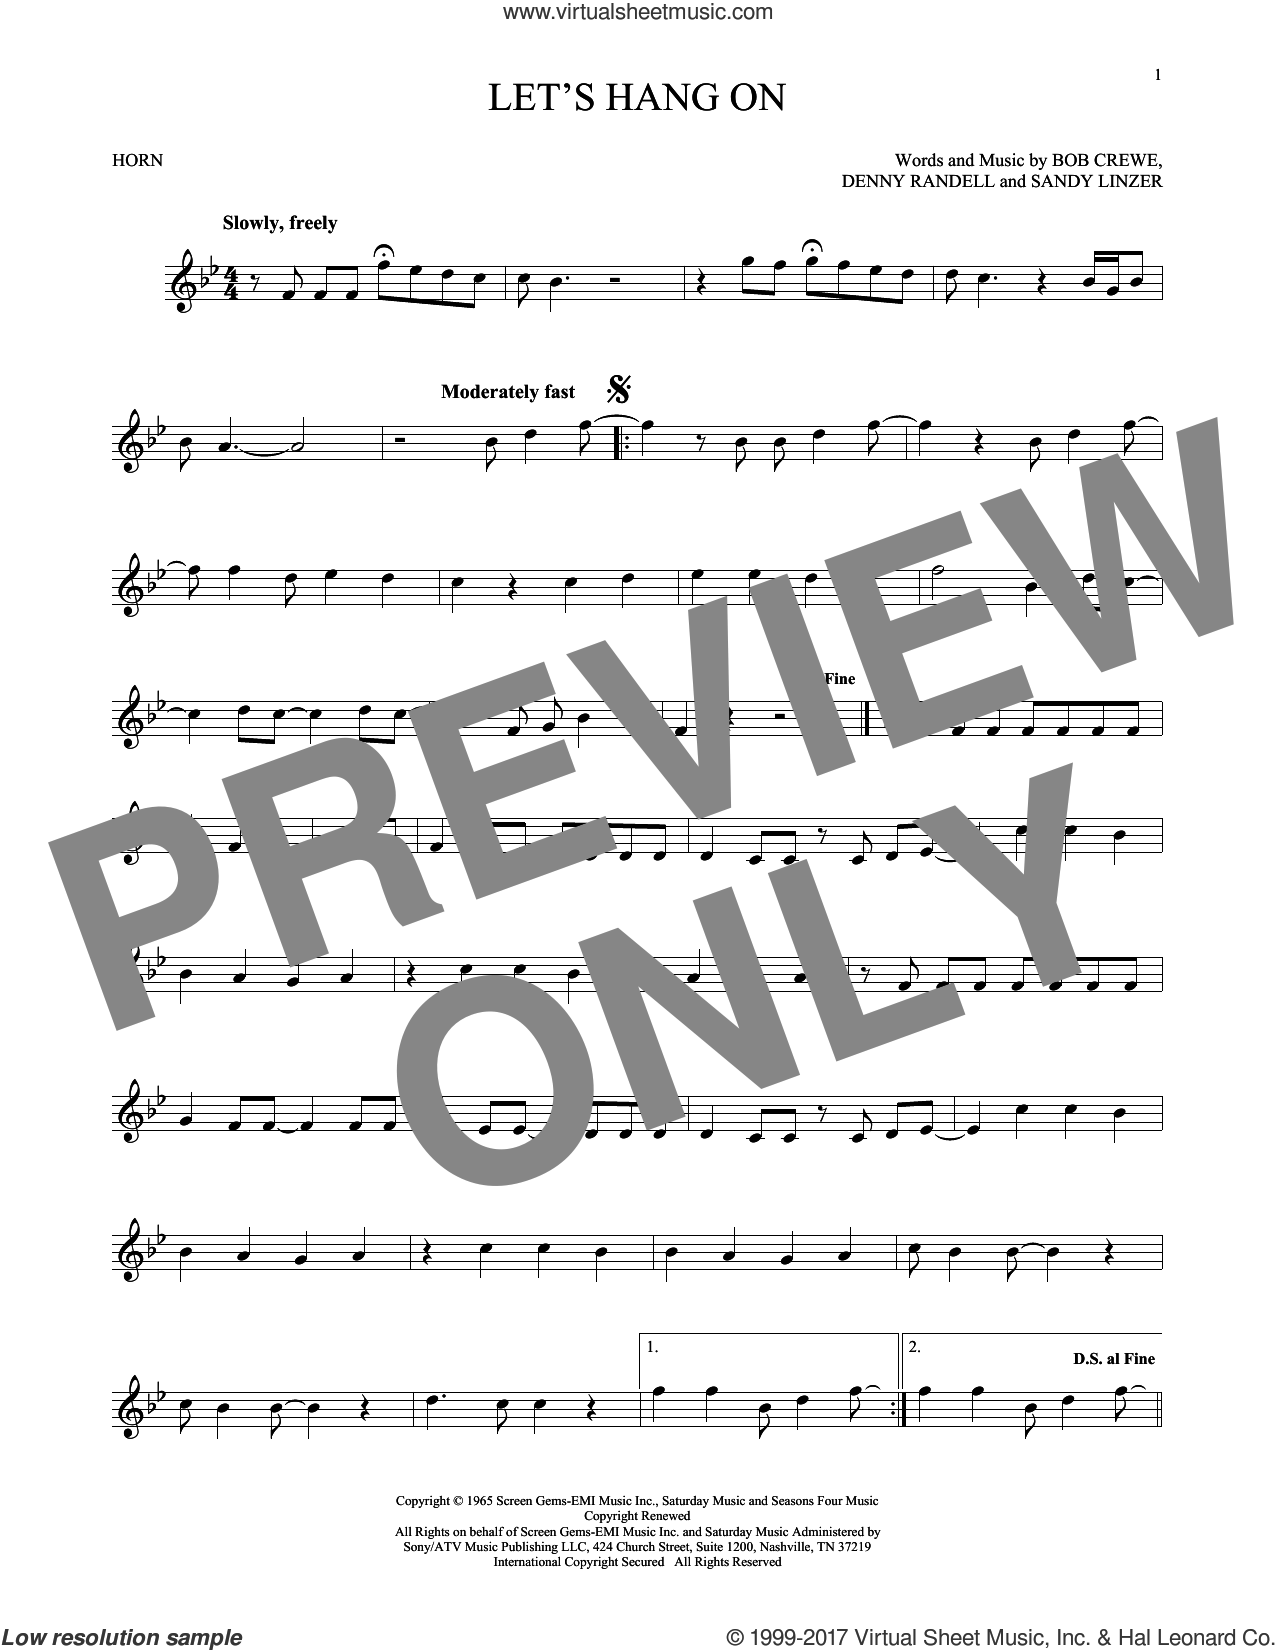 Let's Hang On sheet music for horn solo by The 4 Seasons, Manhattan Transfer, Bob Crewe, Denny Randell and Sandy Linzer, intermediate skill level